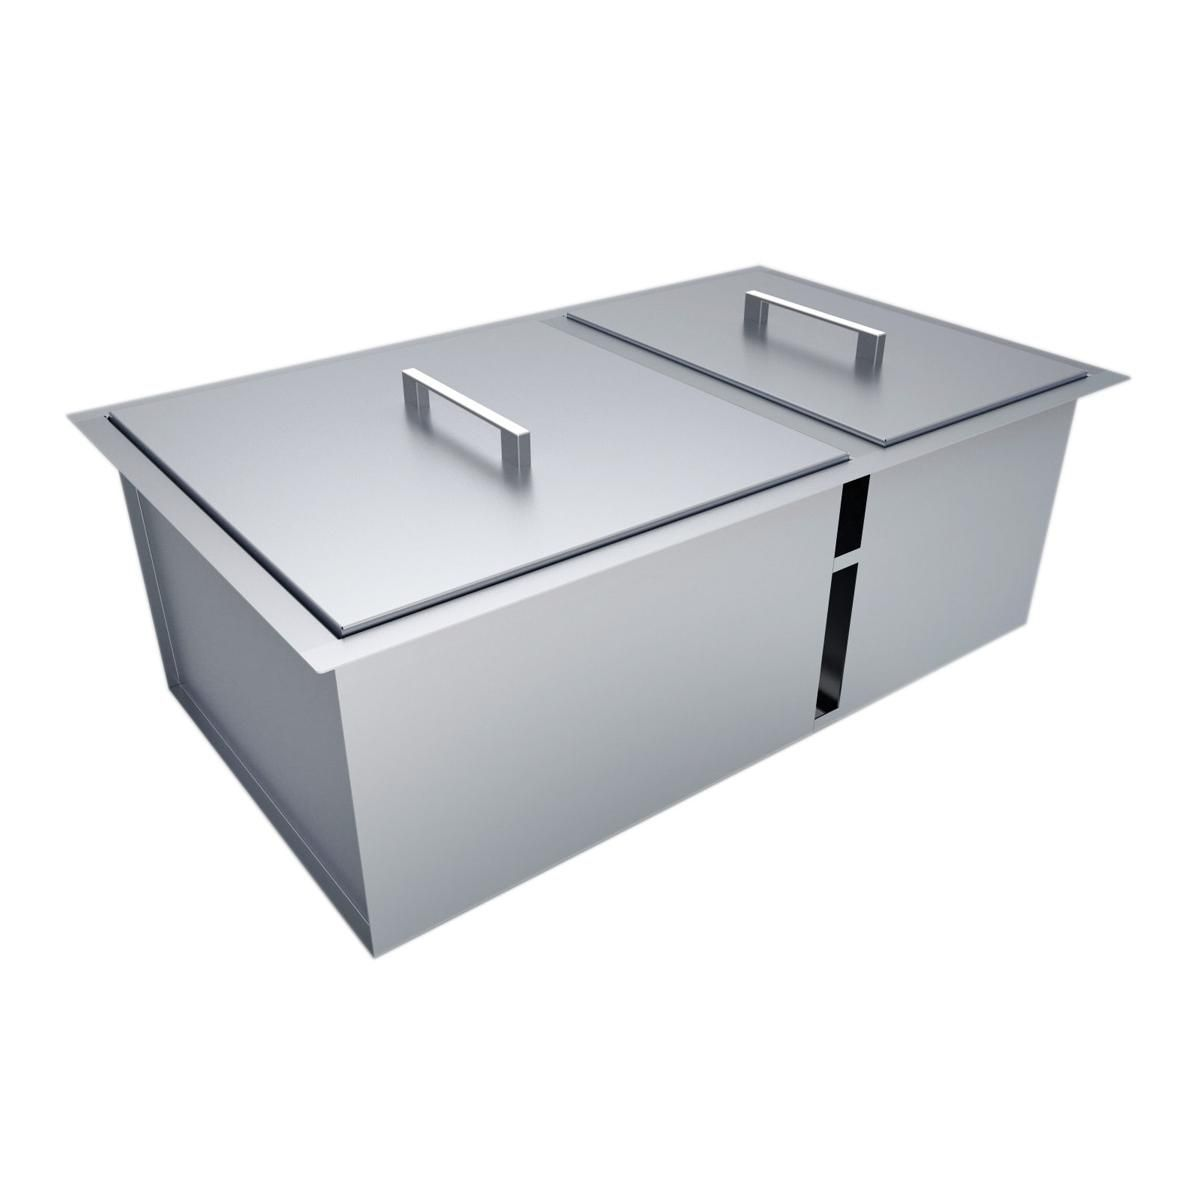 Sunstone Dual Mount 34 Inch Outdoor Rated Double Basin Sink With Covers B Sk34 Double Basin Sink Basin Sink Double Basin